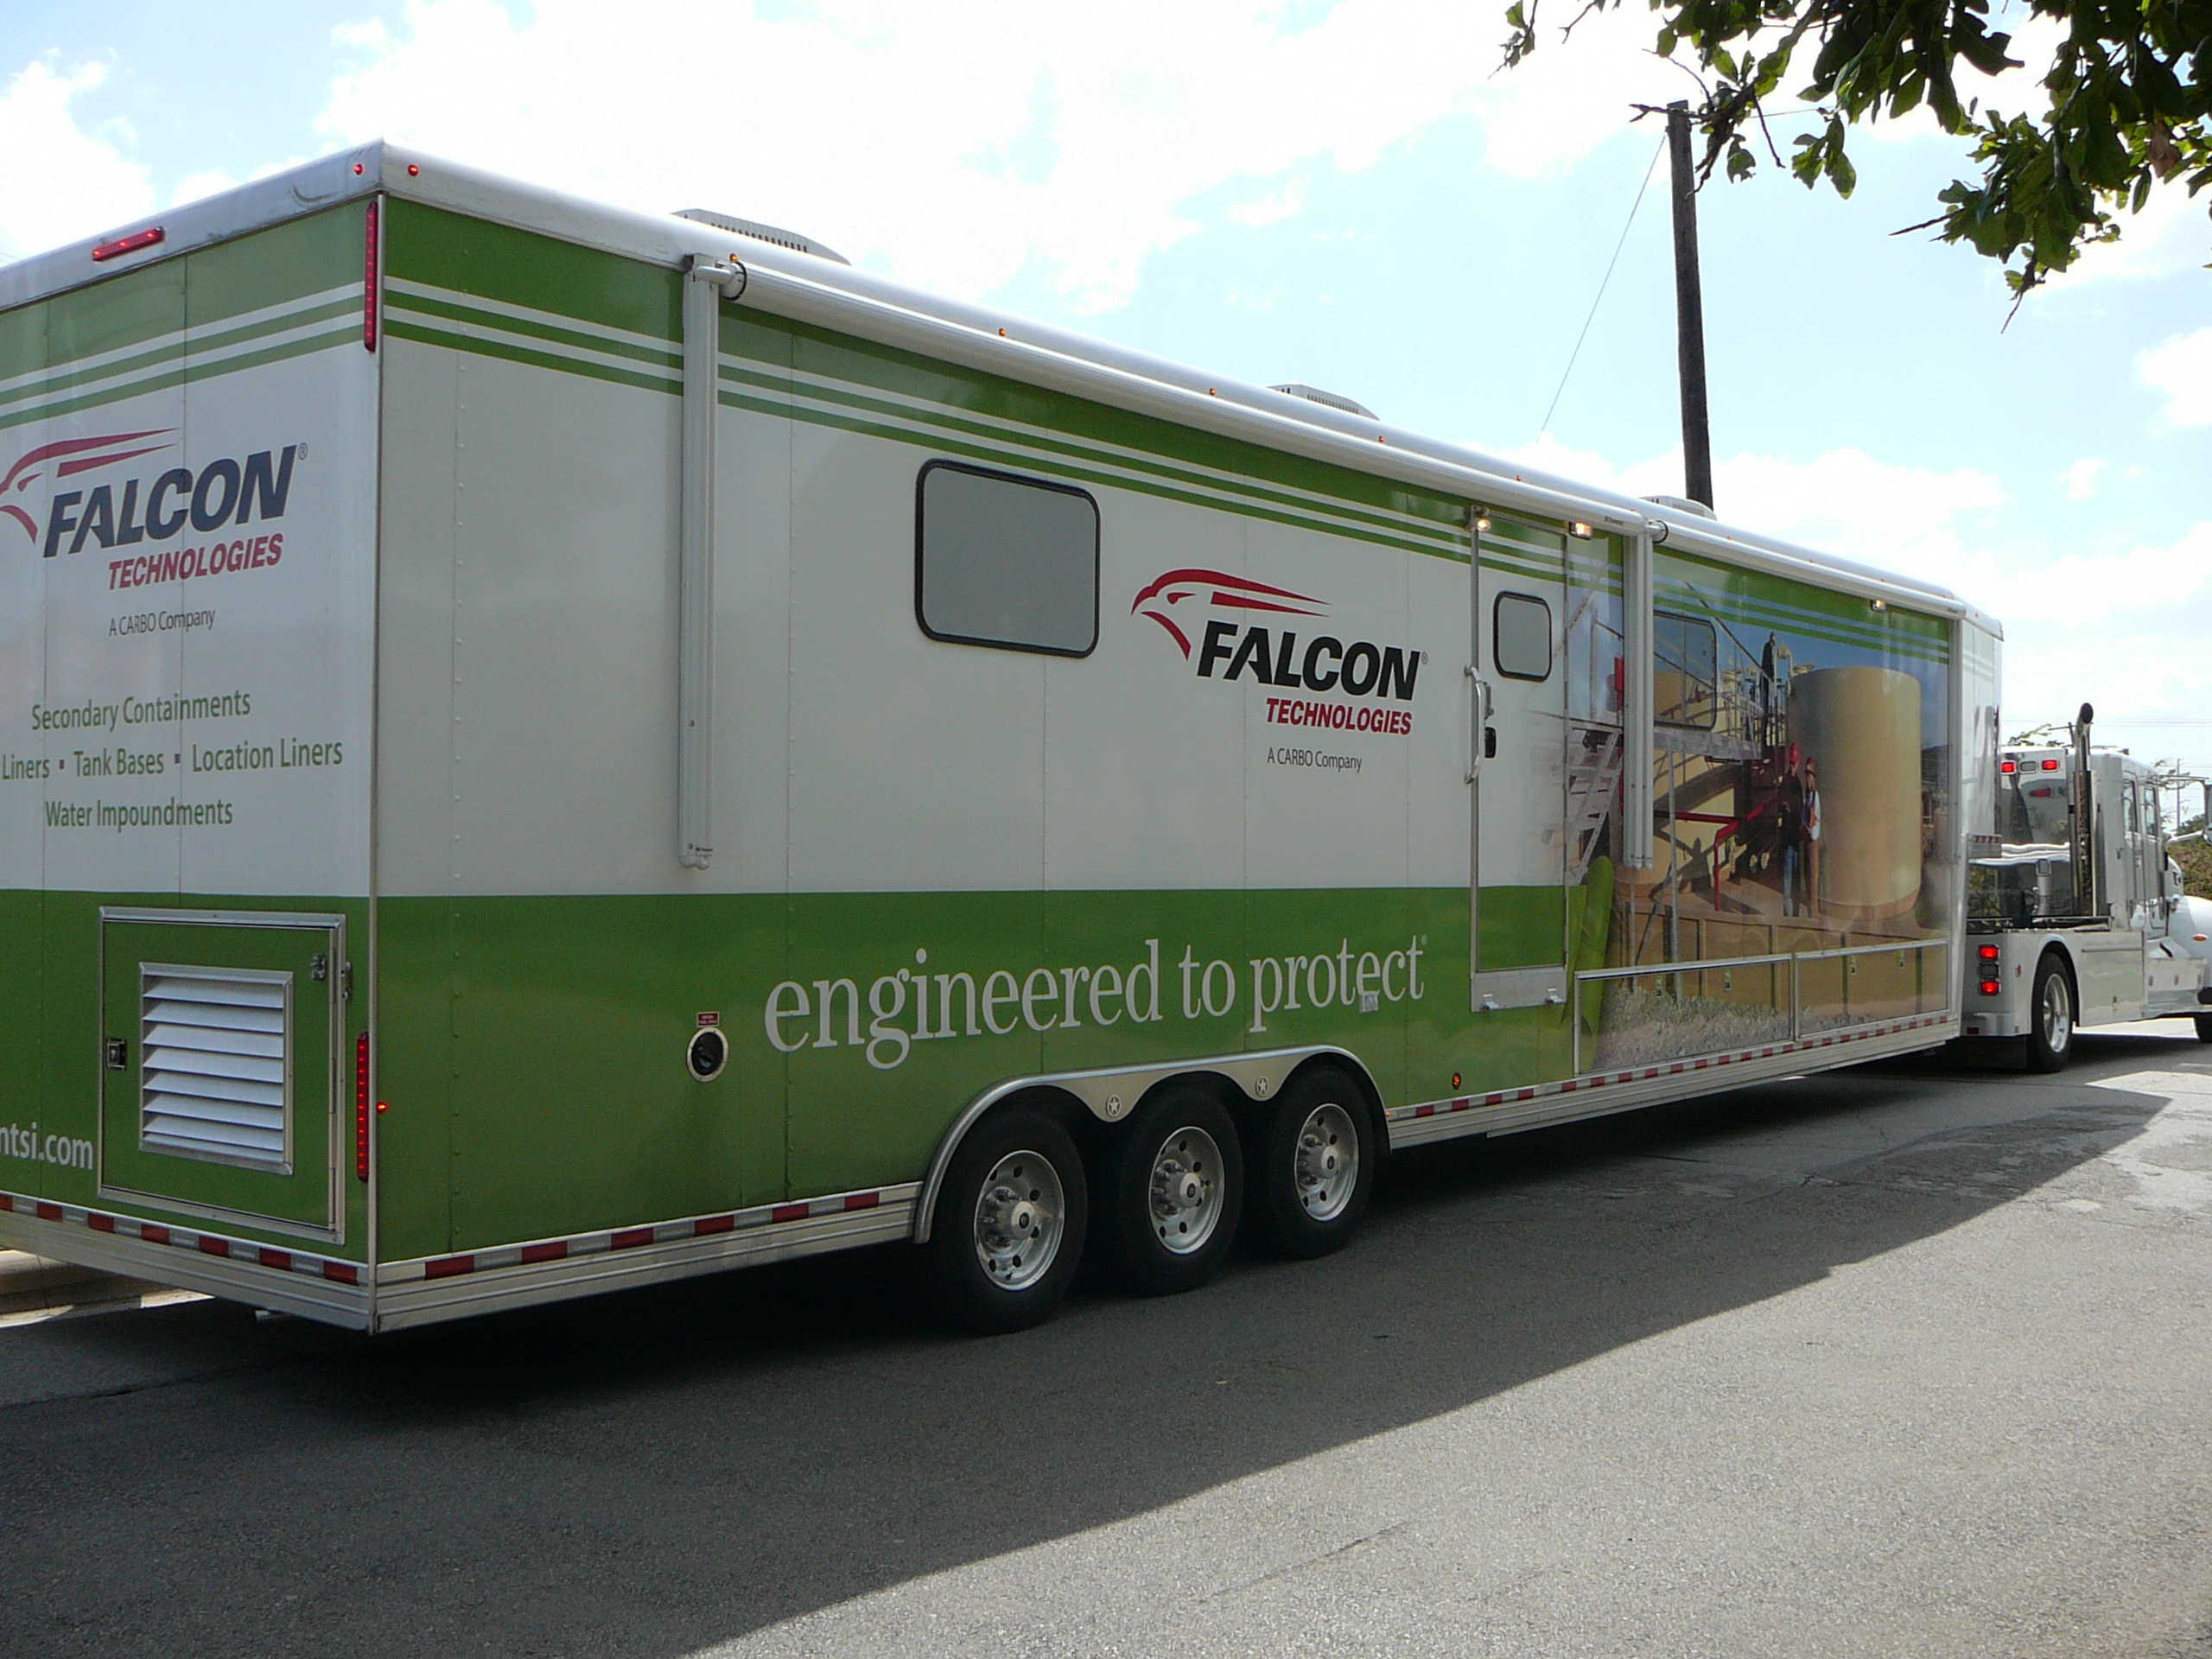 CSC with Falcon Technologies